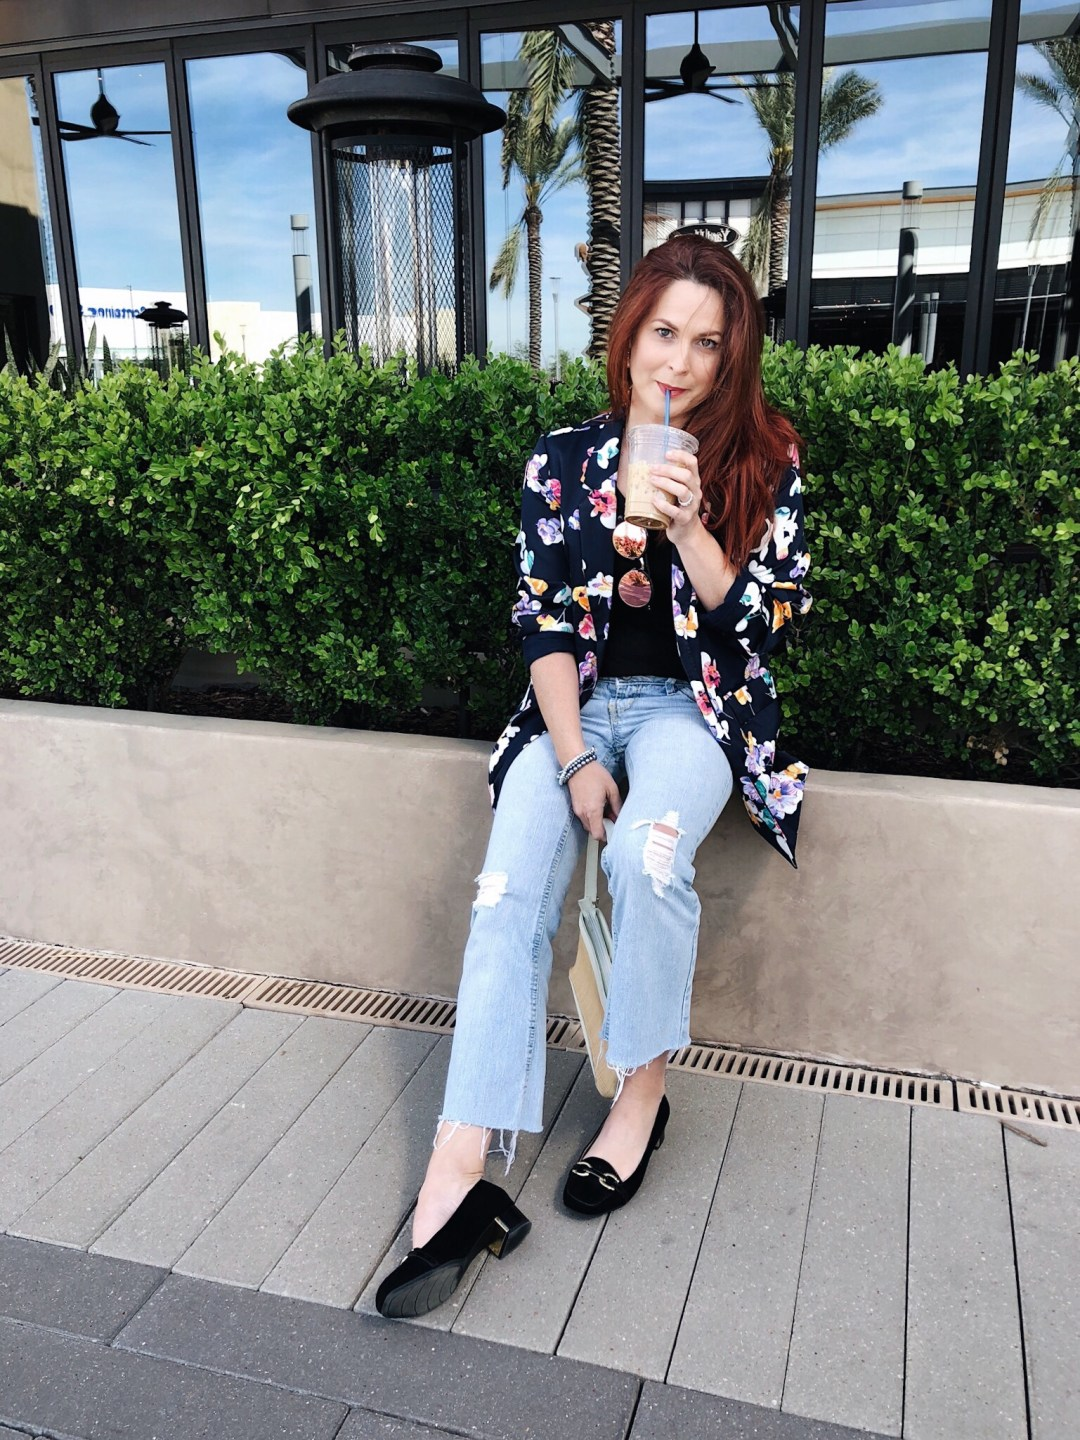 floral blazer, blazer outfits, distressed flares, light wash jean outfits, black loafers, coffee breaks, red hair ideas, long hair styles, basket bag